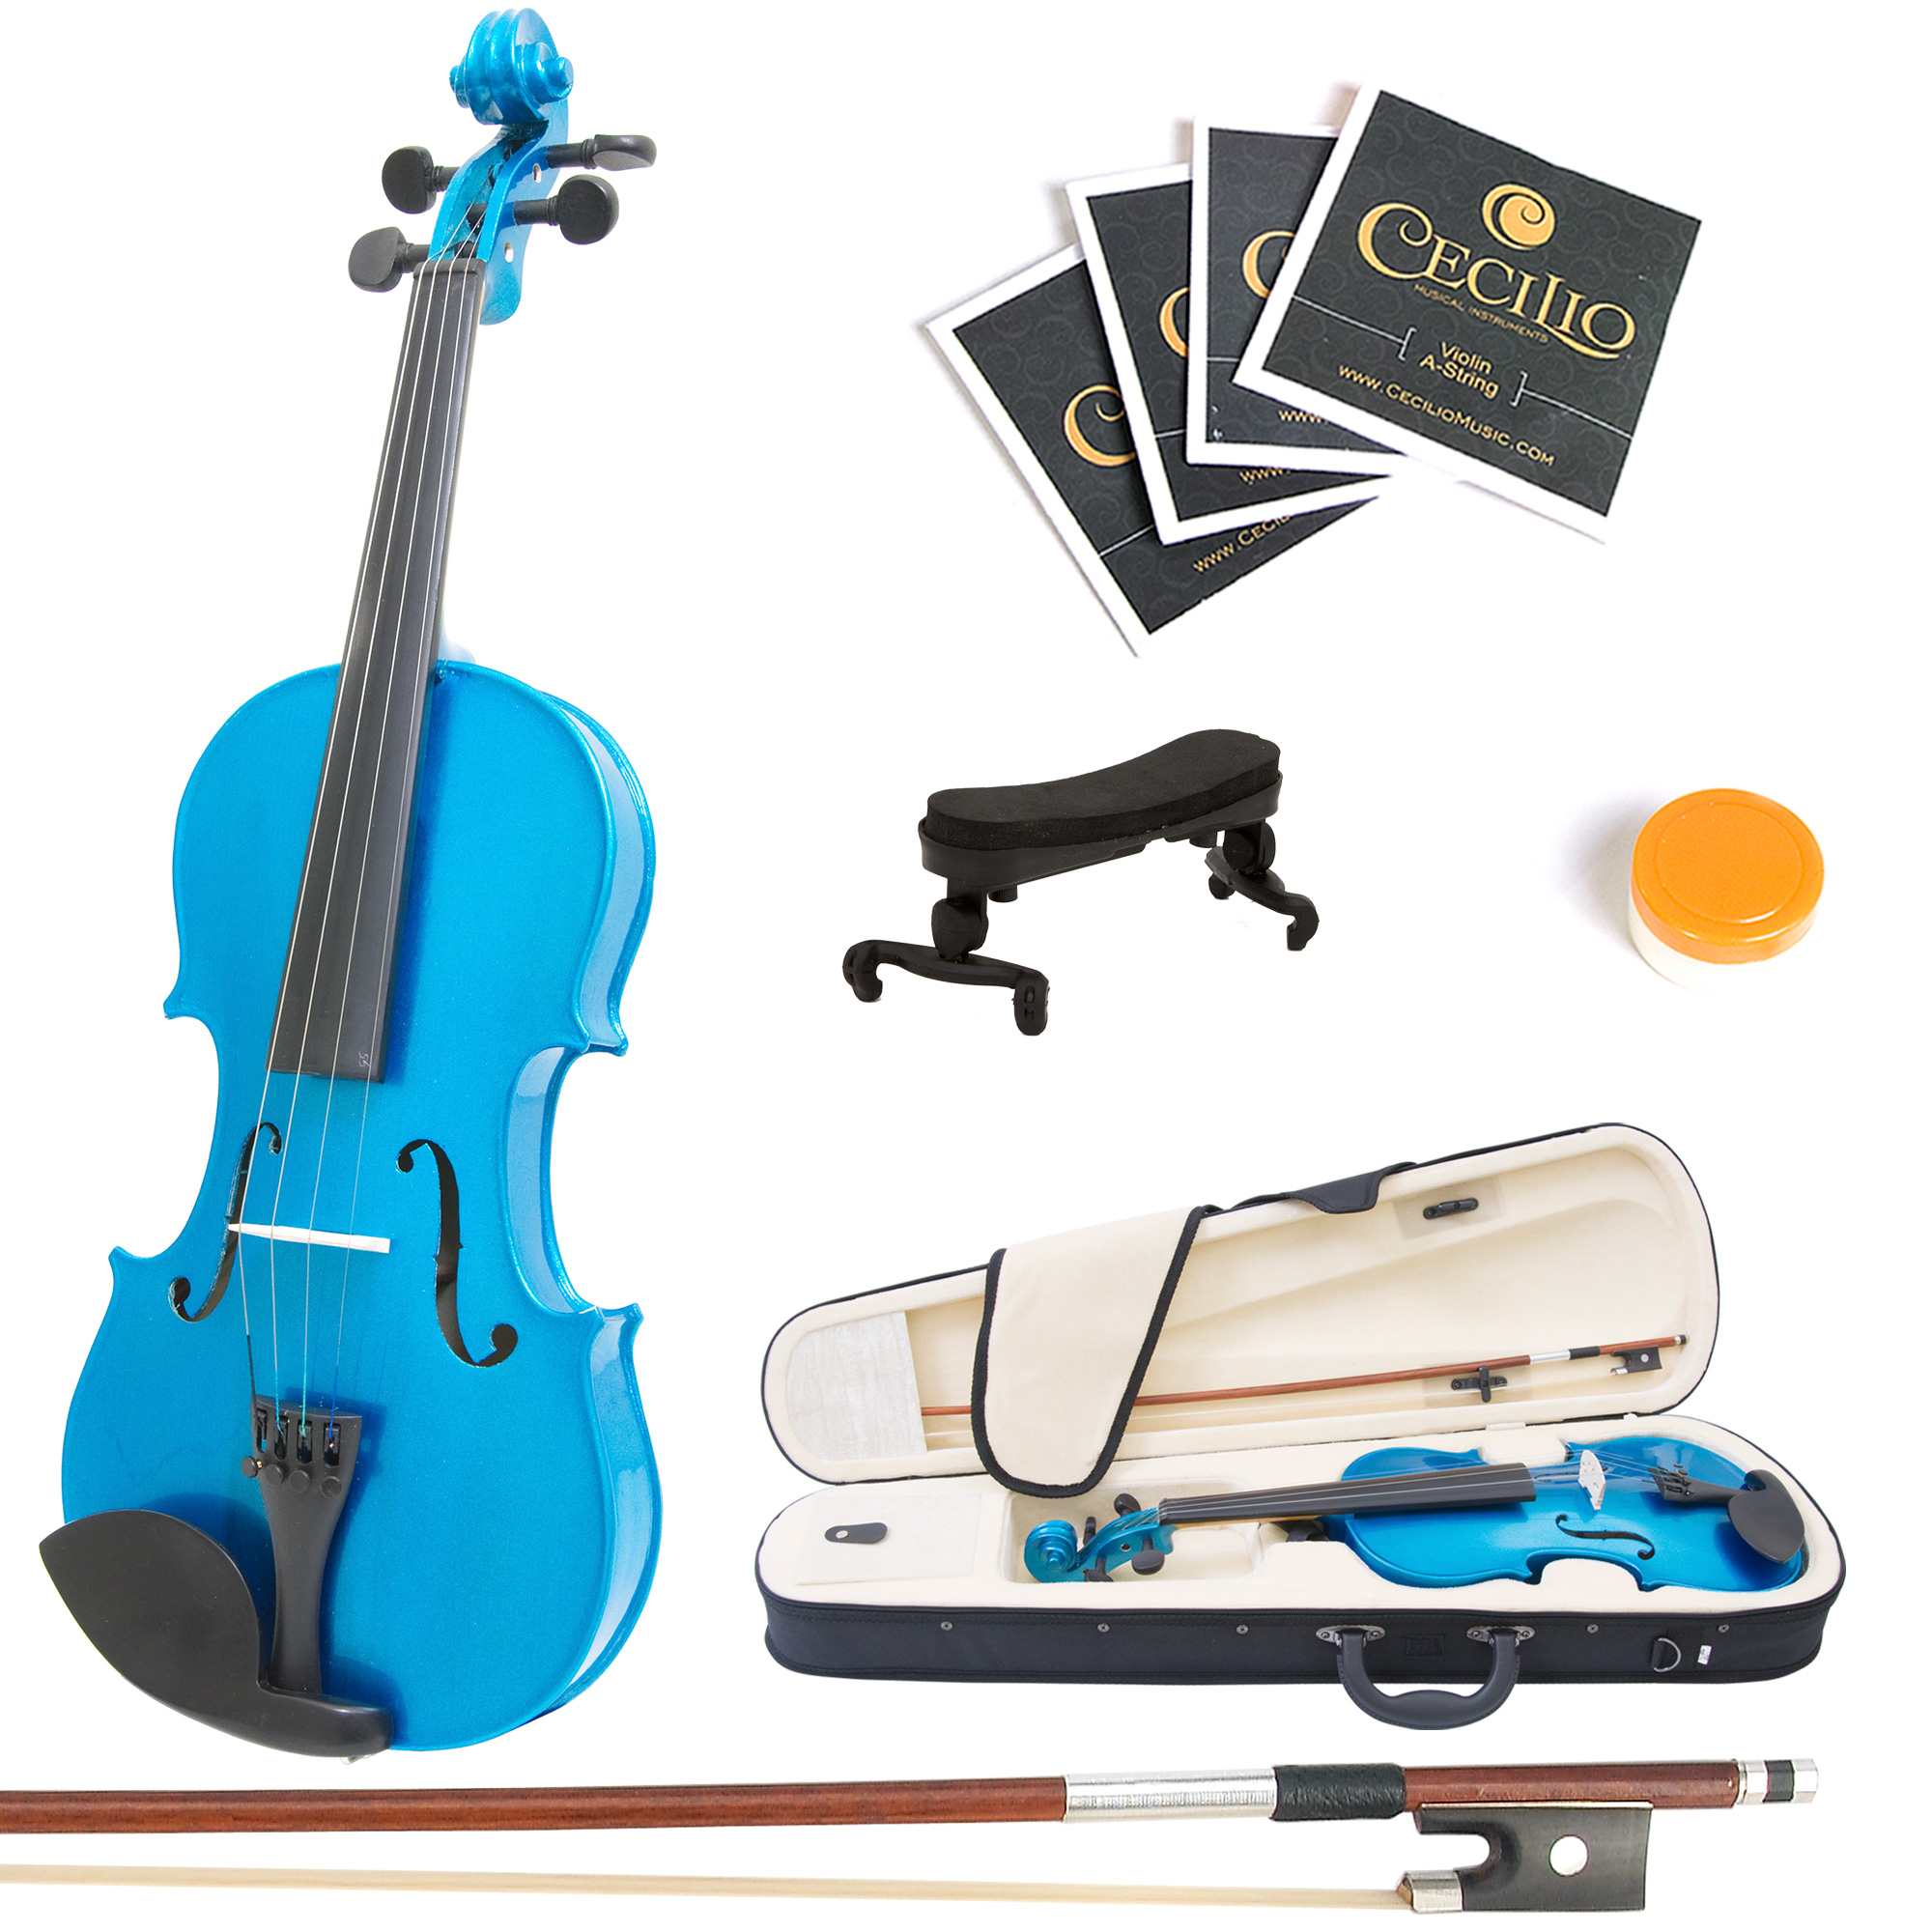 Mendini by Cecilio Full Size 4/4 MV-Blue Handcrafted Solid Wood Violin Pack with 1 Year Warranty, Shoulder Rest, Bow, Rosin, Extra Set Strings, 2 Bridges & Case, Metallic Blue